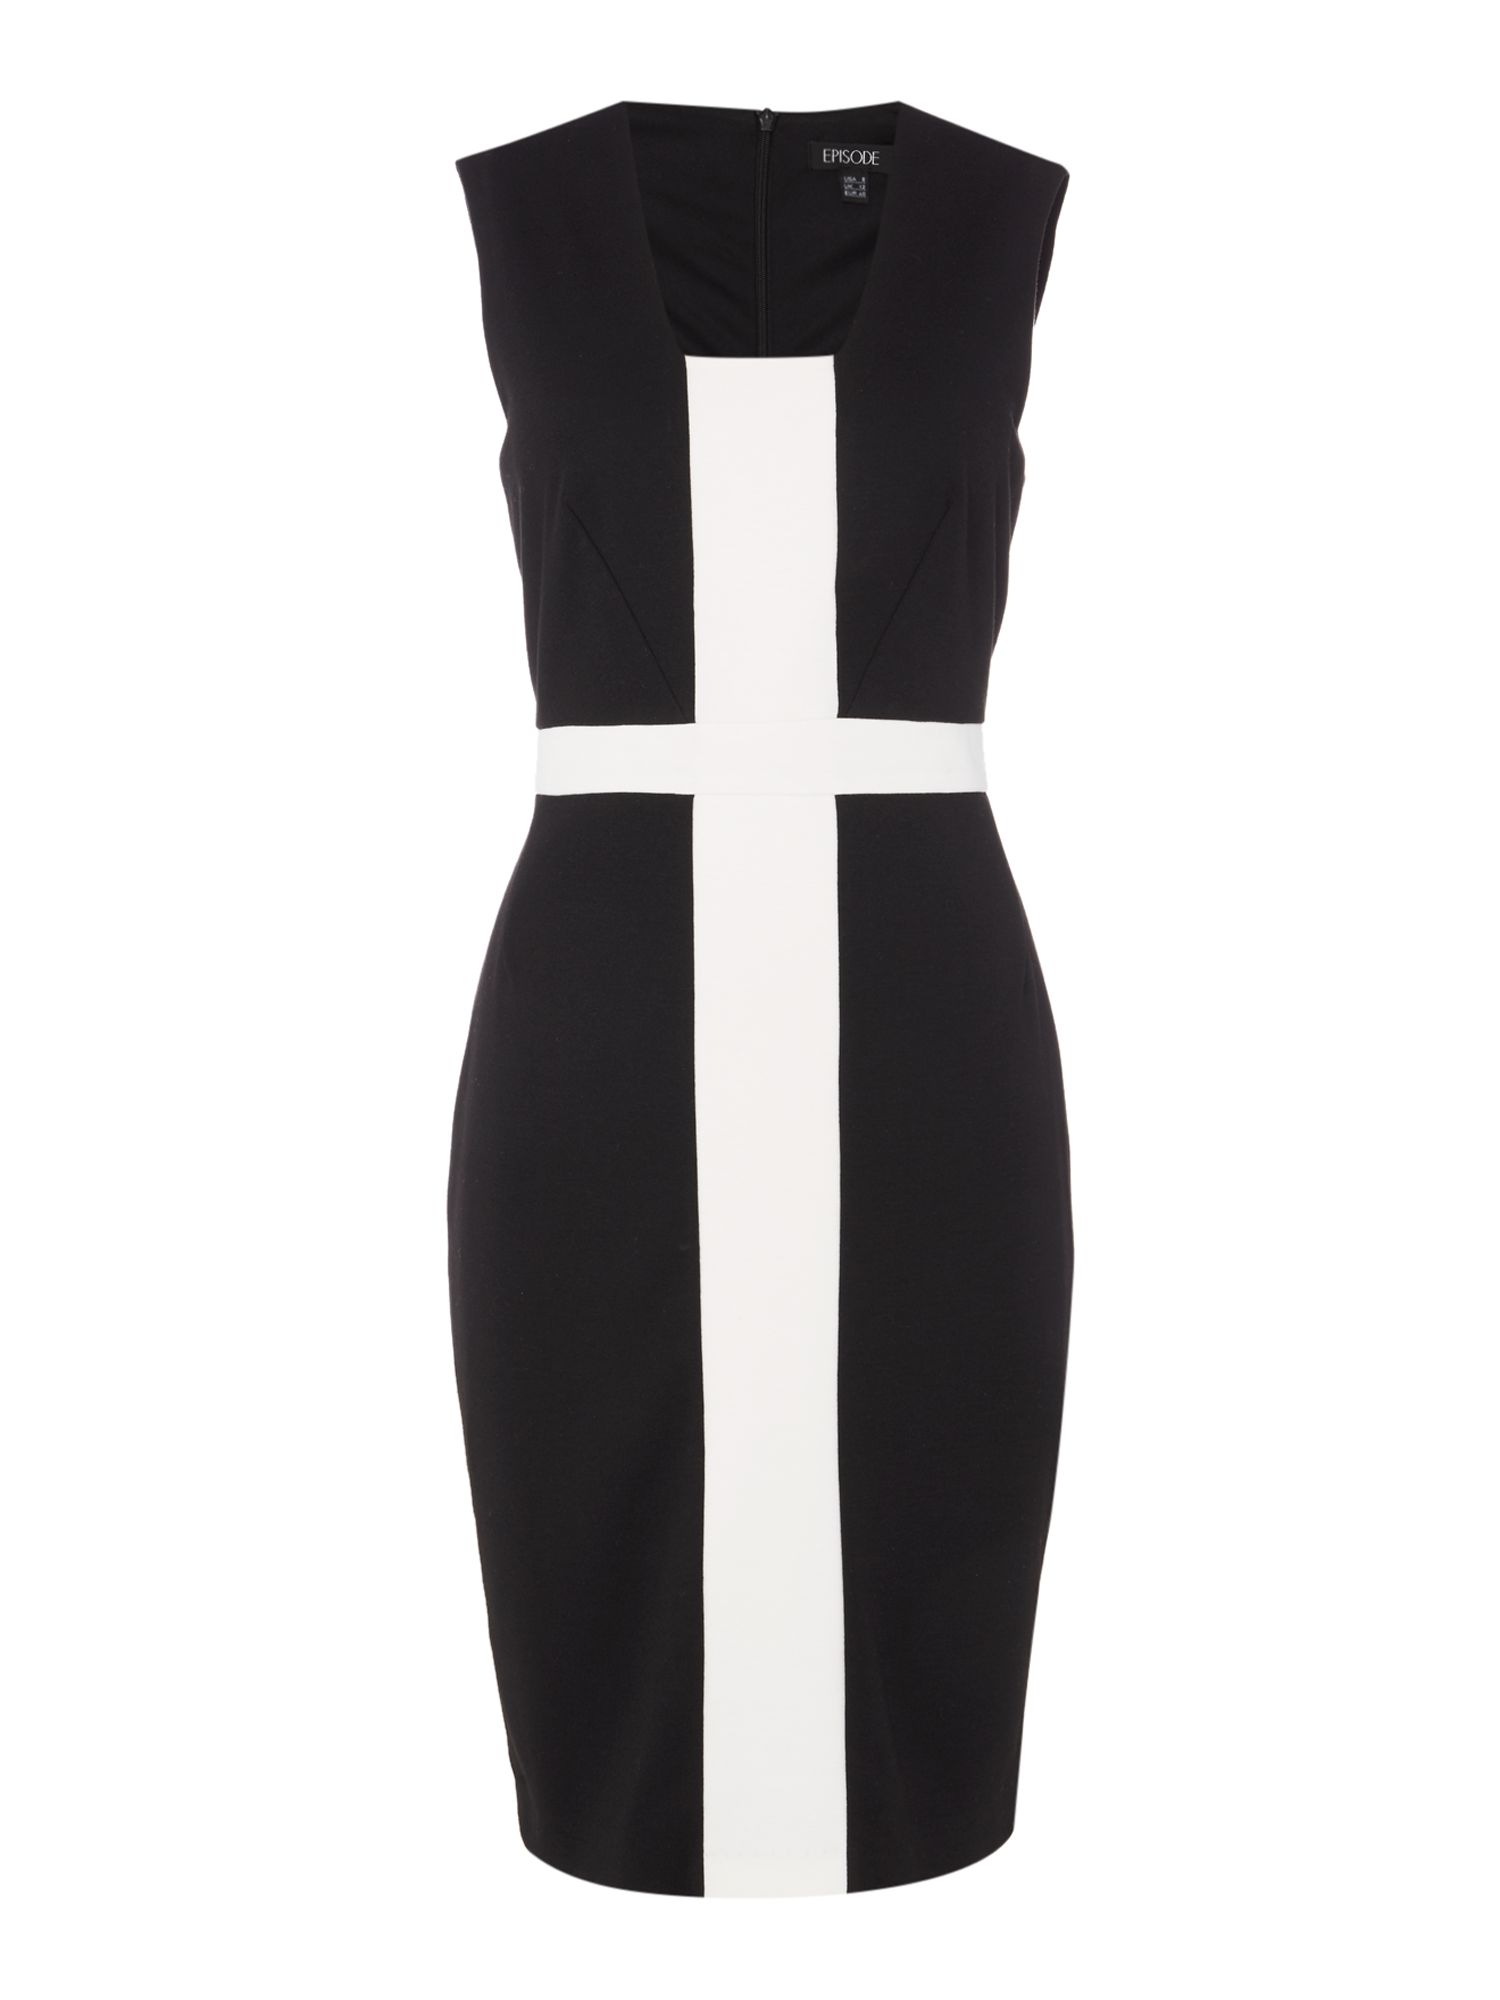 Episode Episode Sleeveless colour block shift dress, Black/White